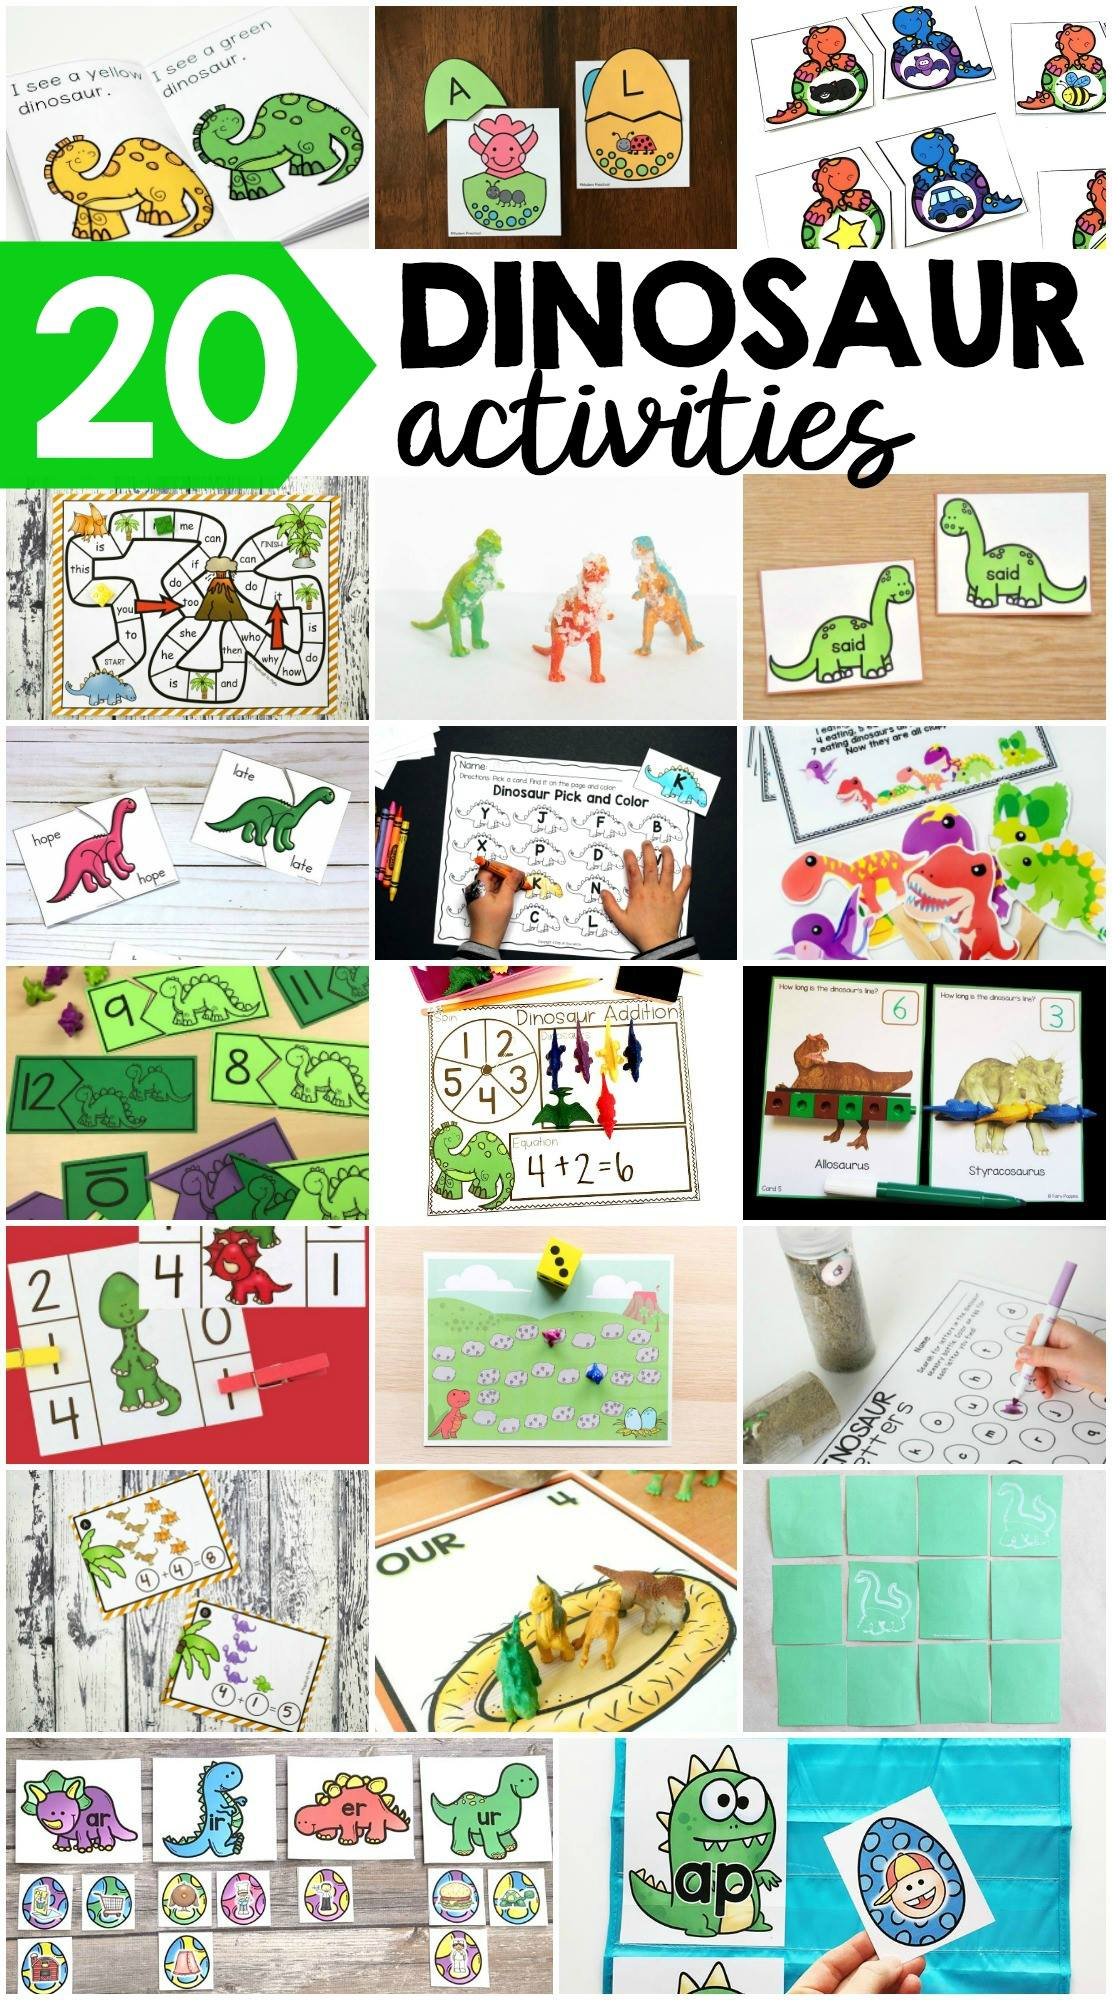 Fun dinosaur activities for kids!